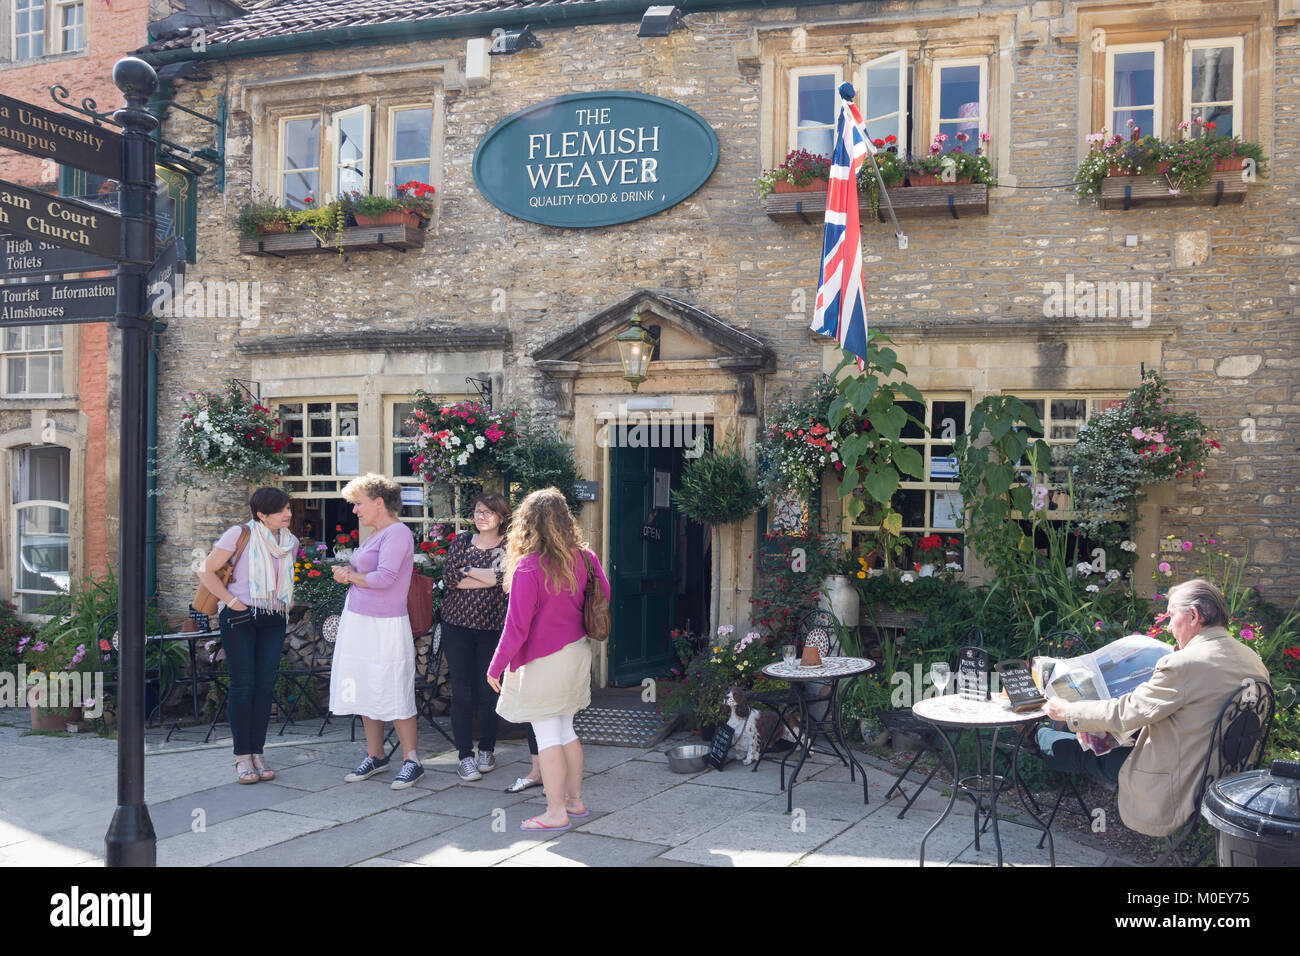 17th century The Flemish Weaver Pub, High Street, Corsham, Wiltshire, England, United Kingdom - Stock Image